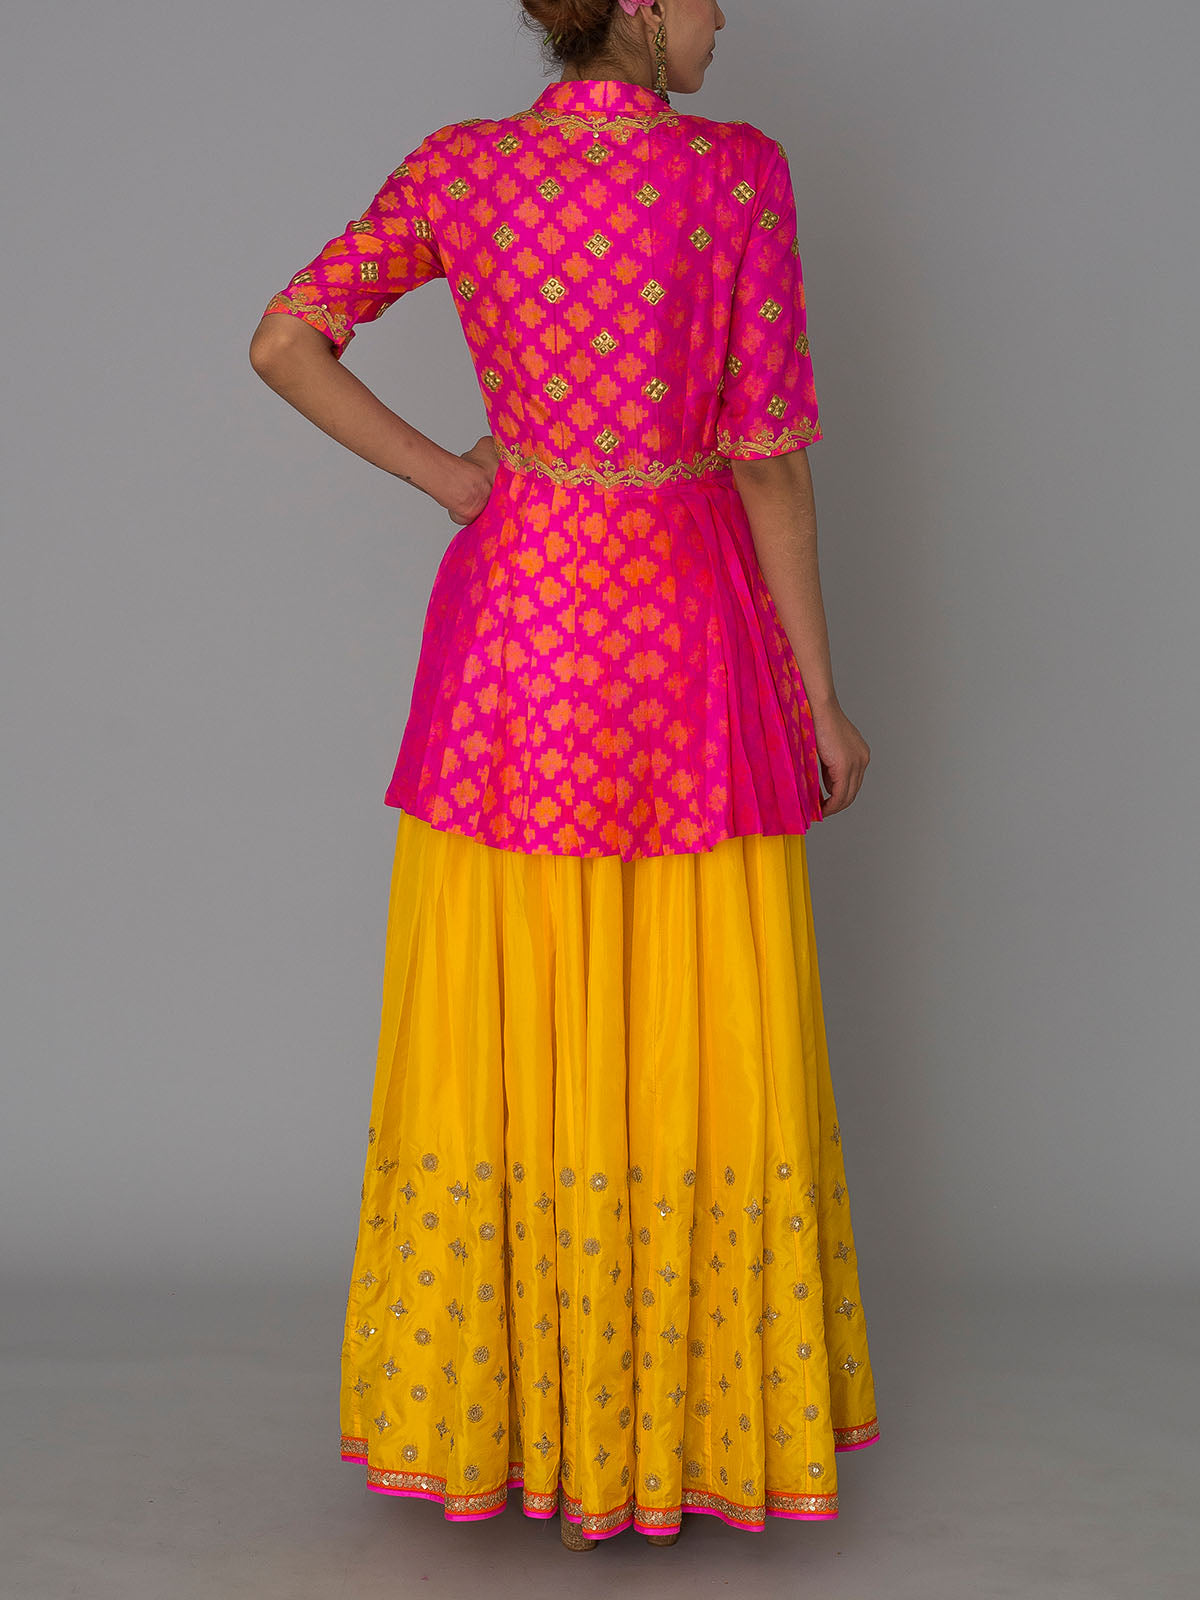 HOT PINK MARODI PEPLUM WITH YELLOW EMBROIDED LEHENGA